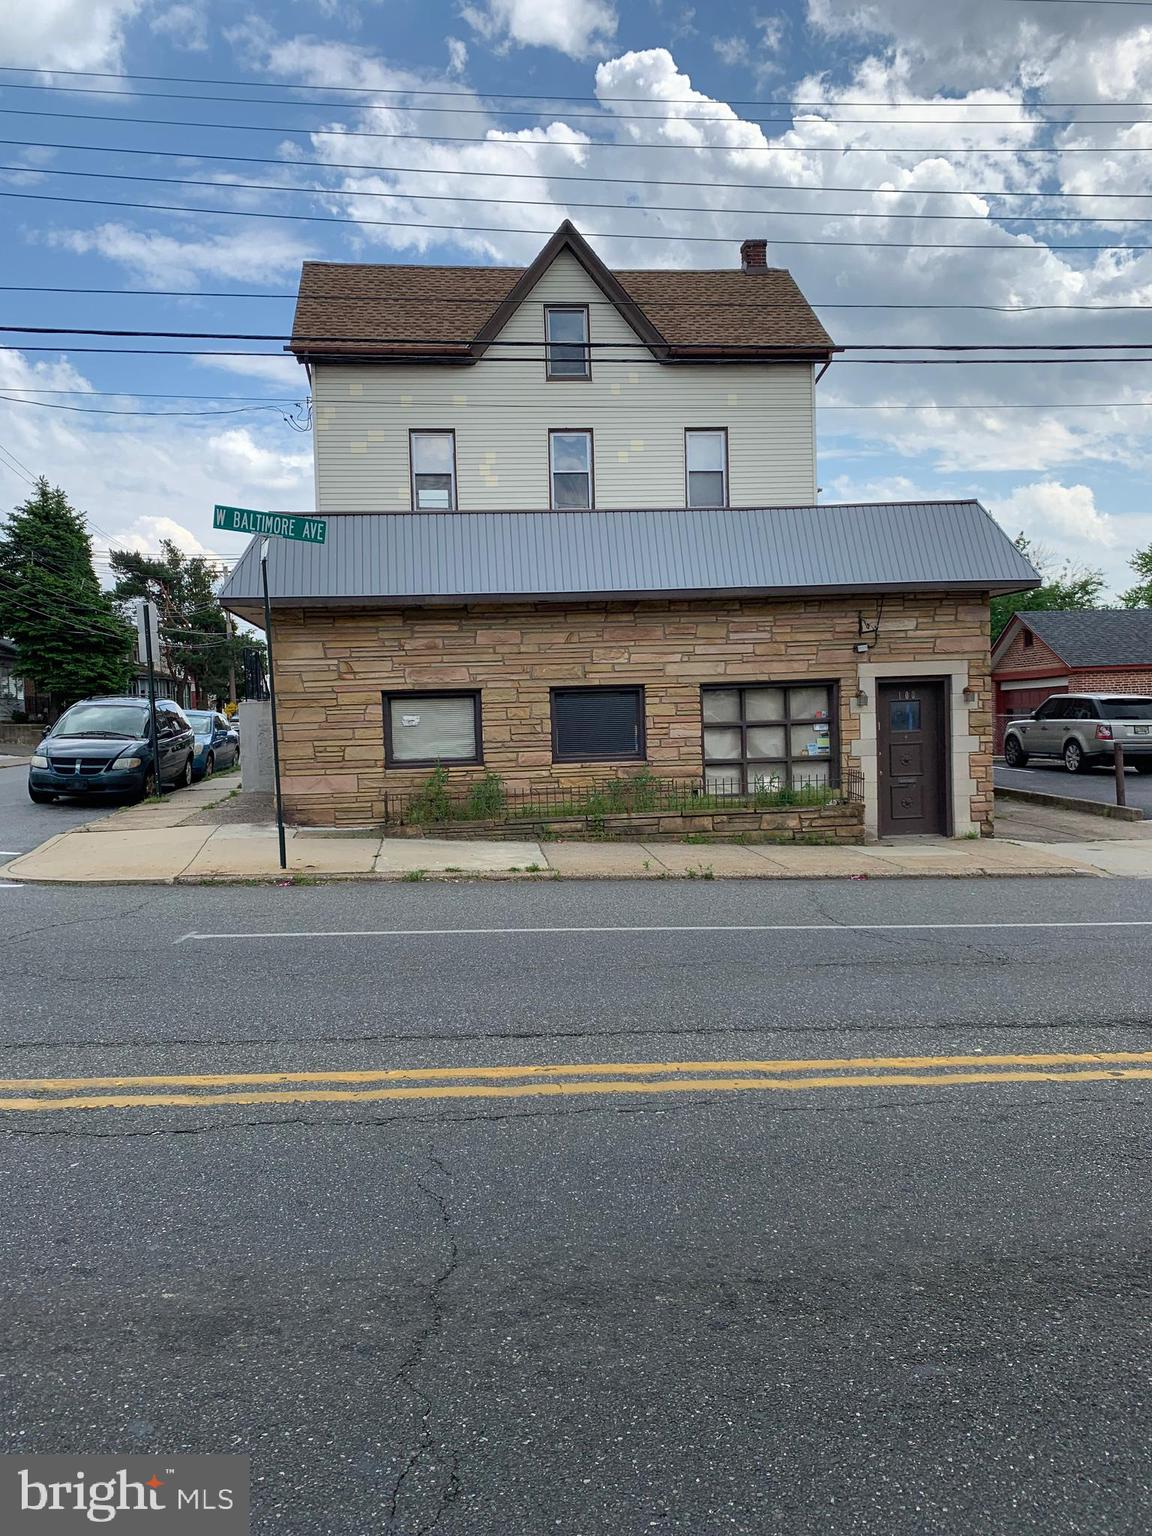 100 W BALTIMORE AVENUE, CLIFTON HEIGHTS, PA 19018